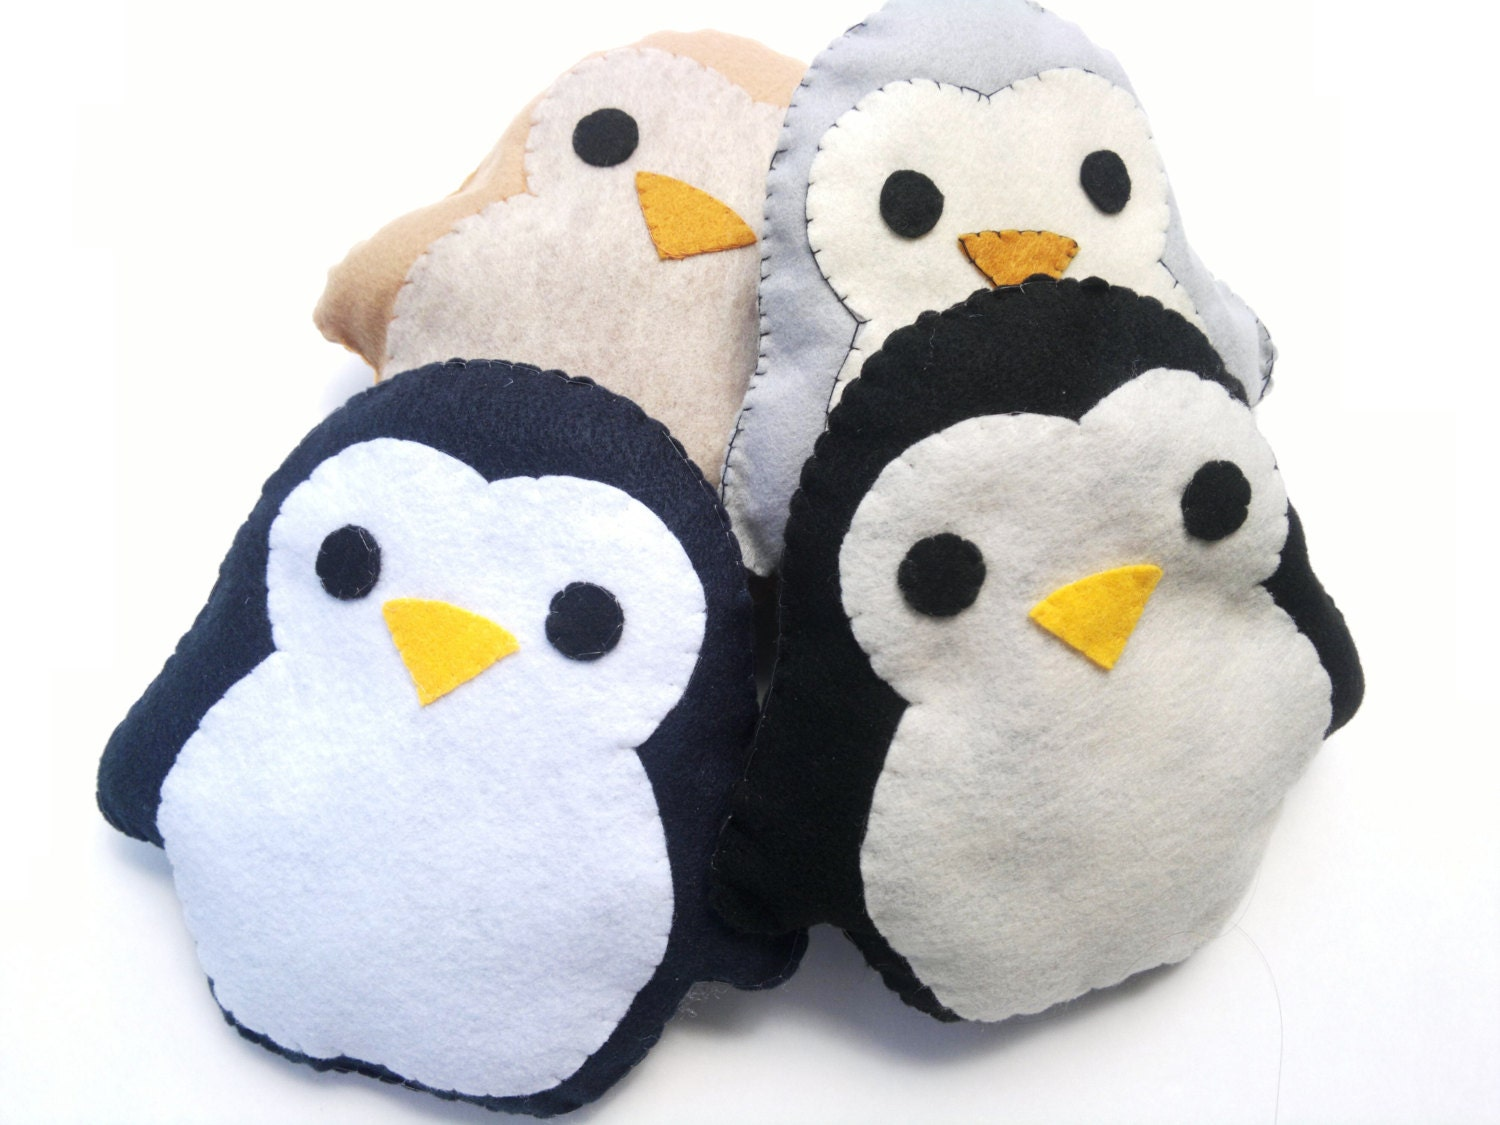 Cute Names For A Penguin Pillow Pet : Cute Handmade and Handsewn Kawaii Penguin by WhimsicaIWonderIand